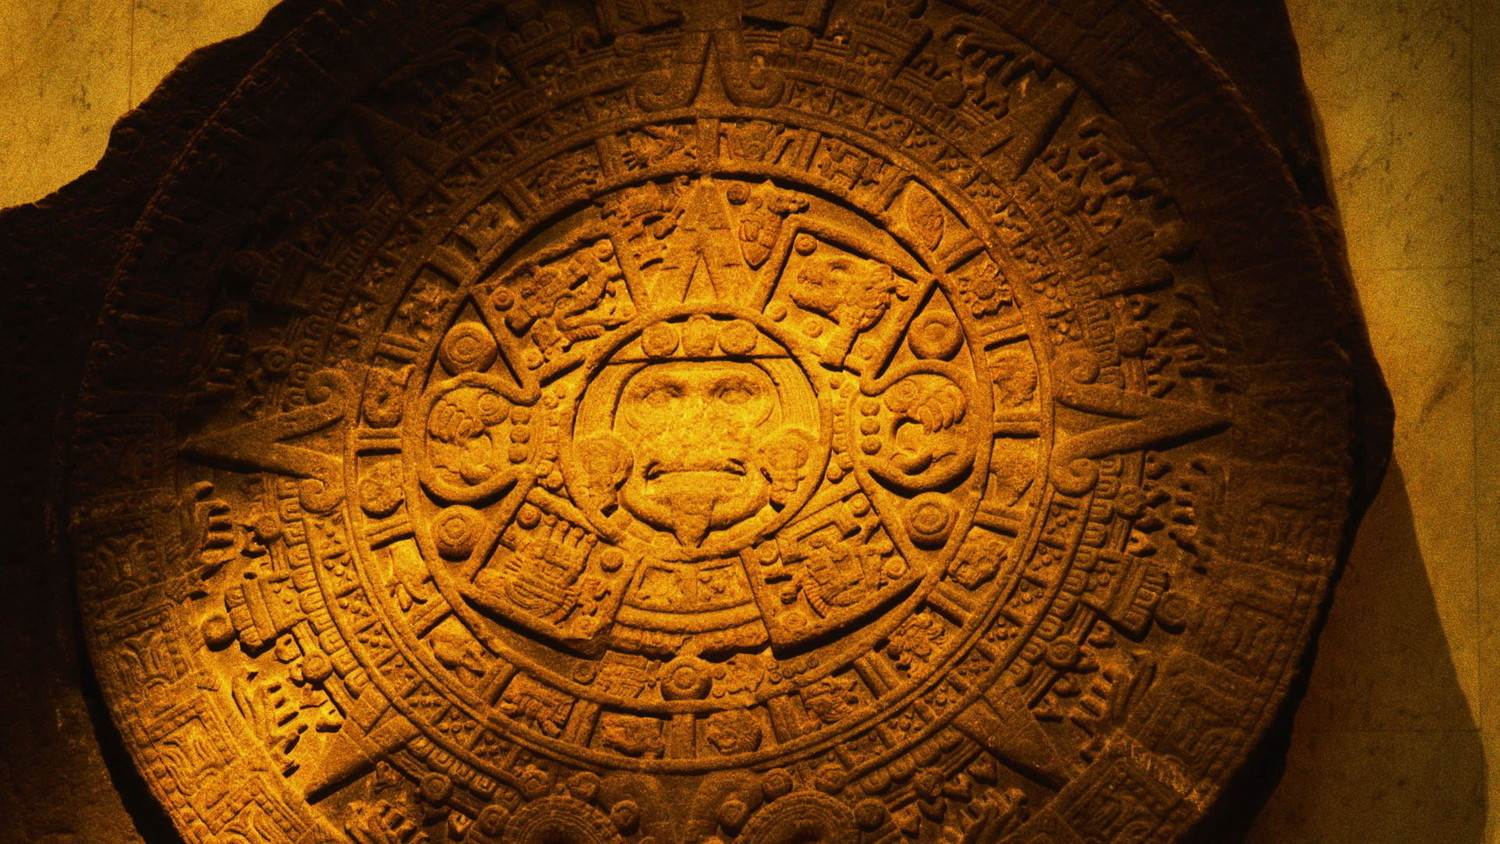 Scientists have deciphered the inscriptions left by the Mayan civilization